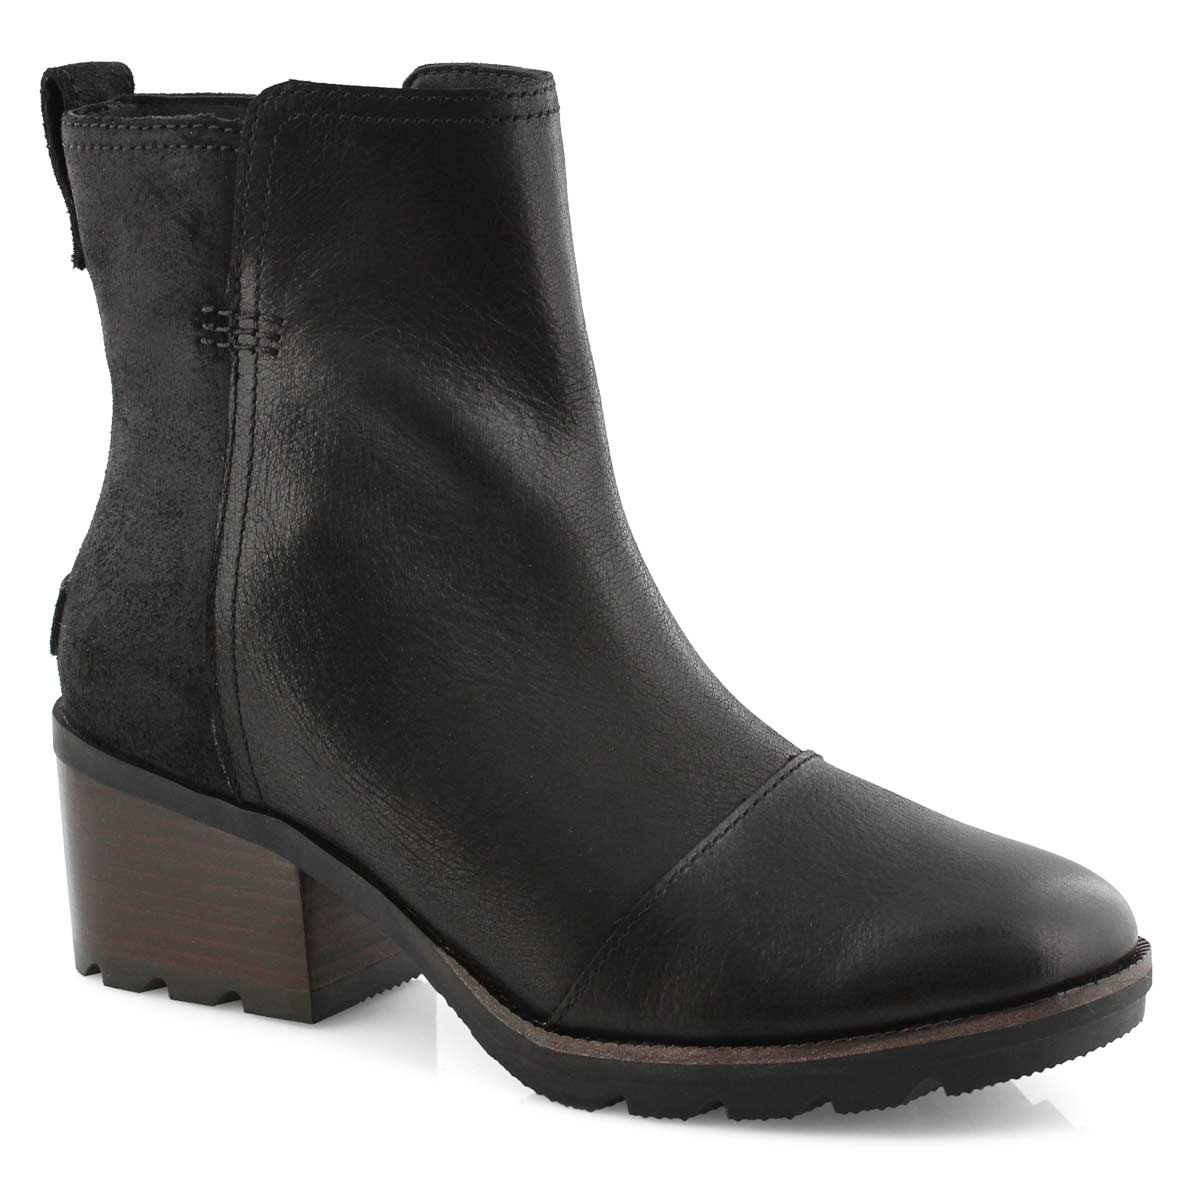 Lds Cate Bootie black wtpf ankle boot